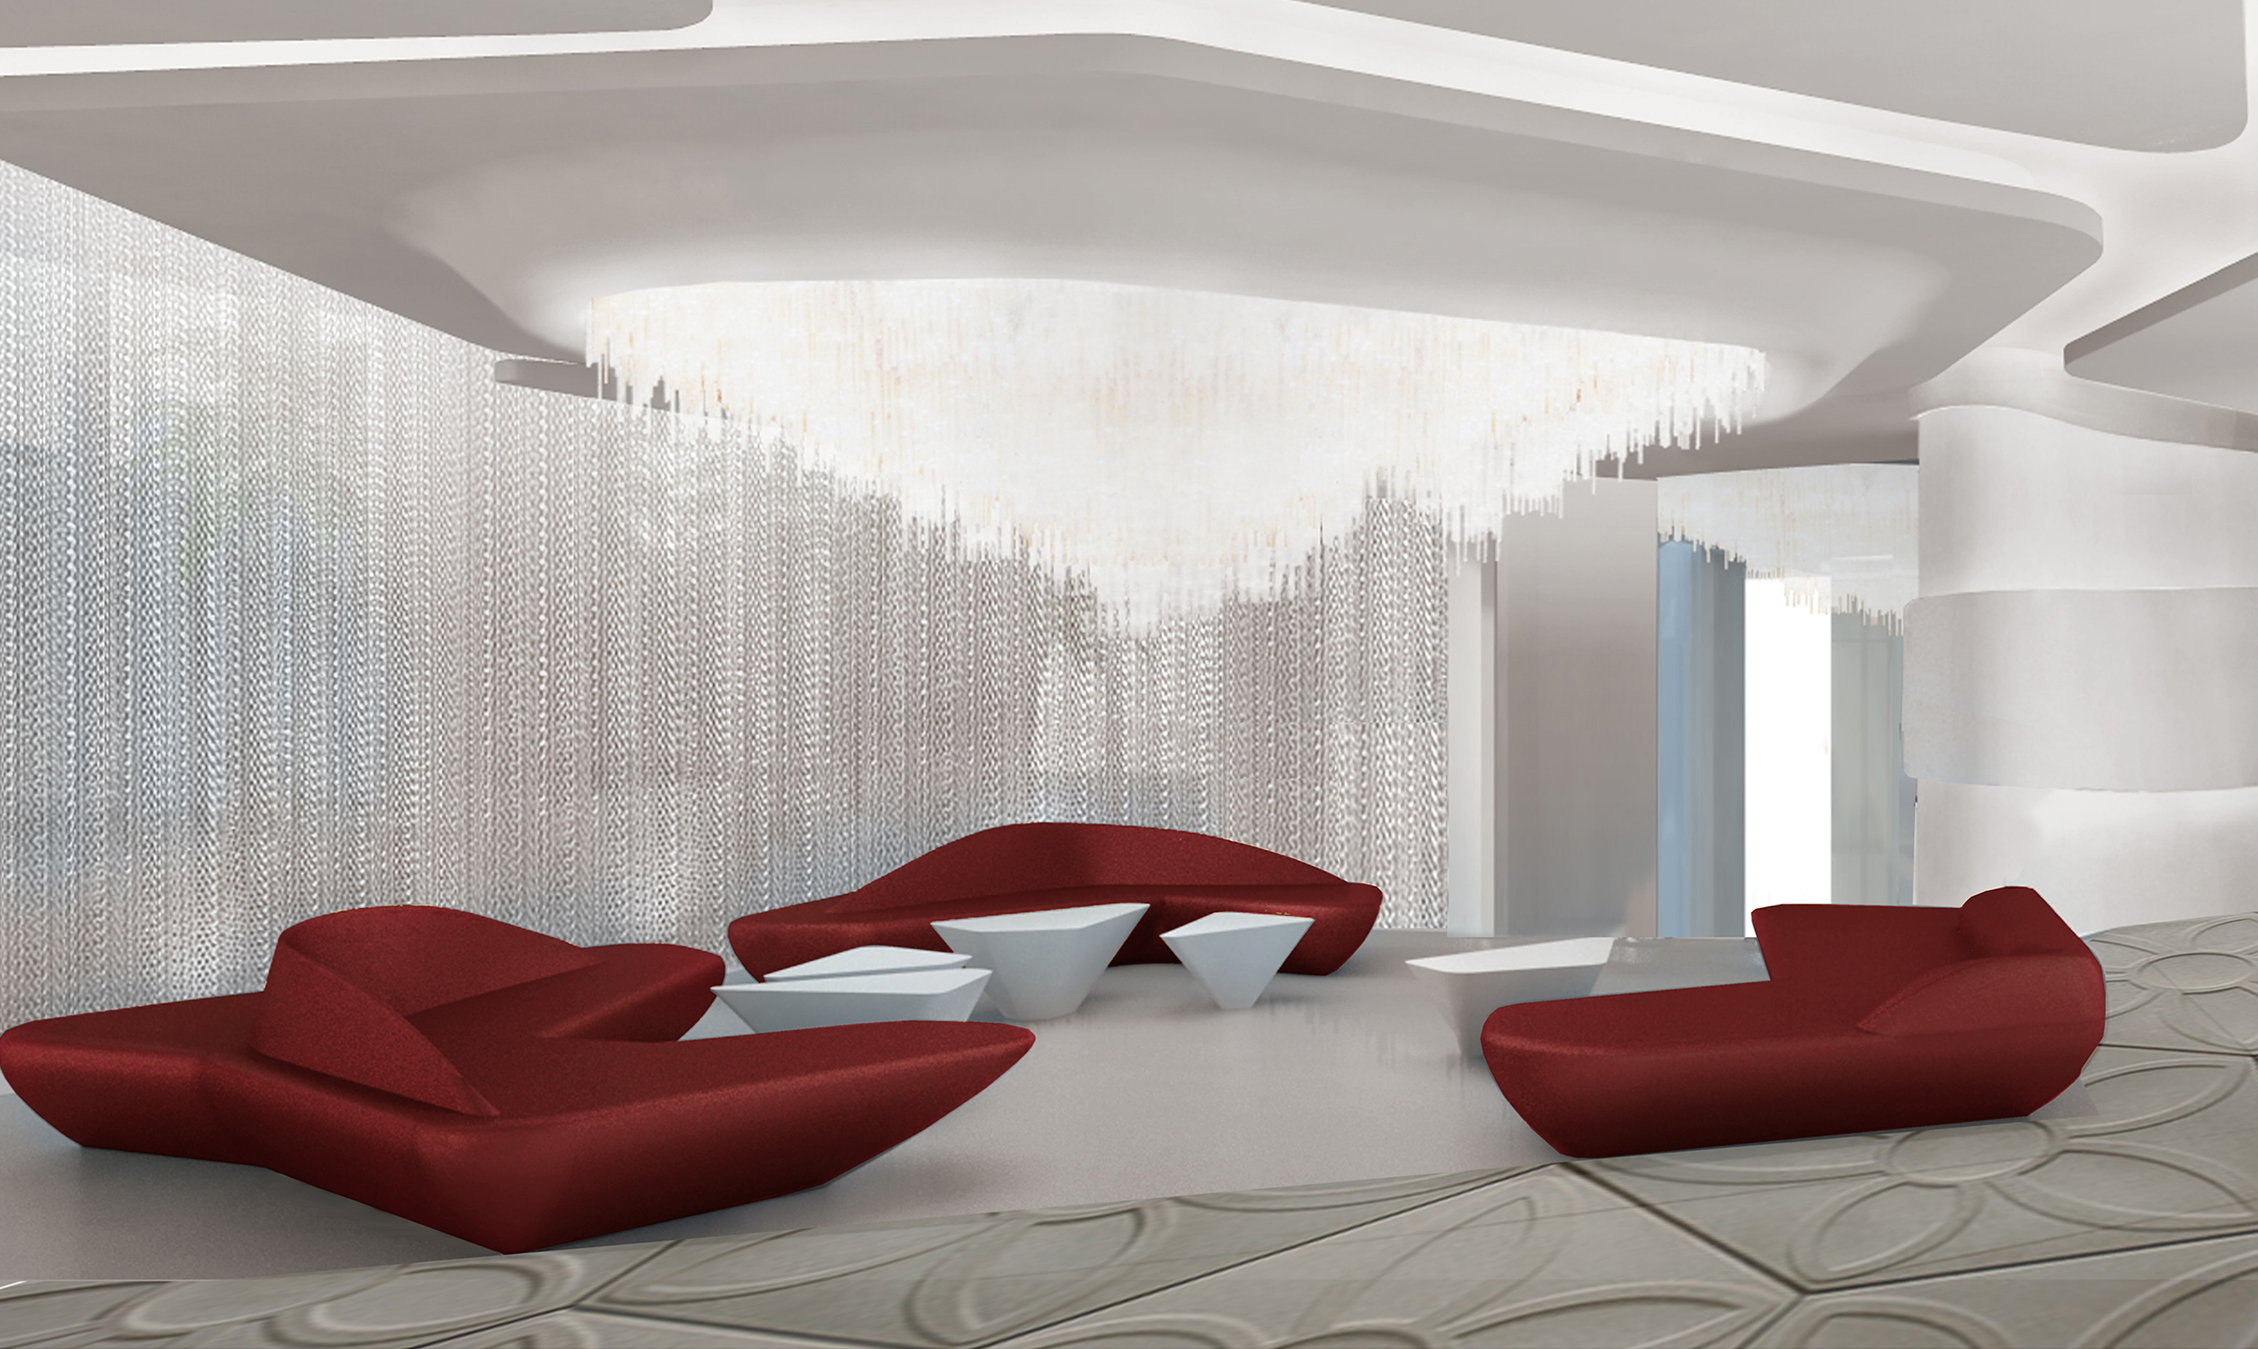 interiorsBEAD VIP Palace Doha Qatar elevations.JPG